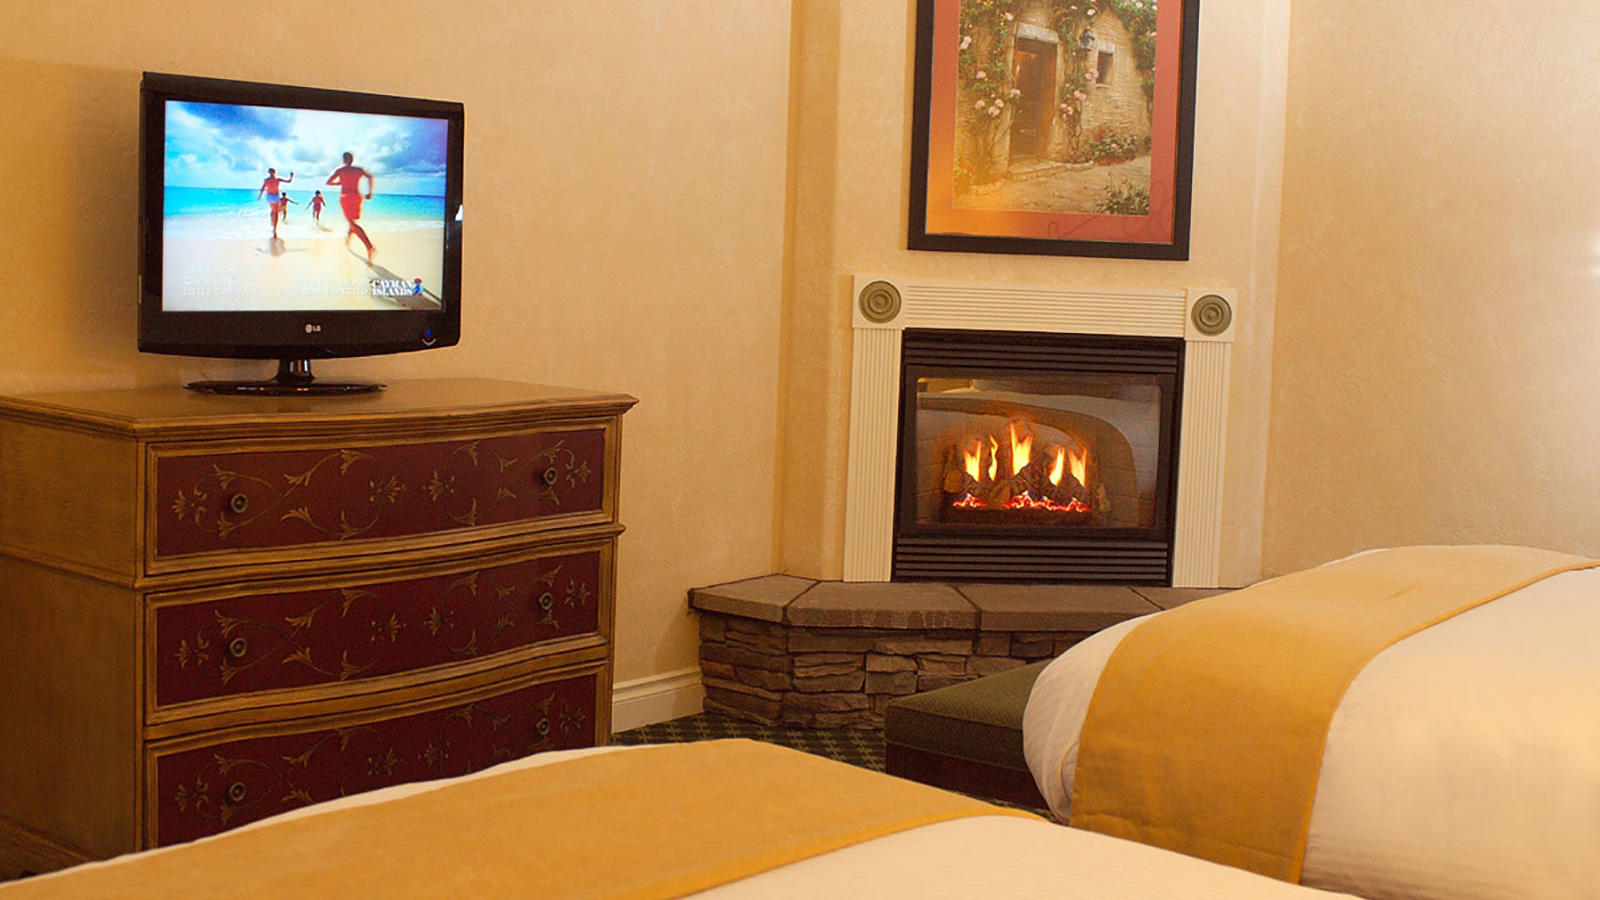 A TV plays in an Oregon hotel